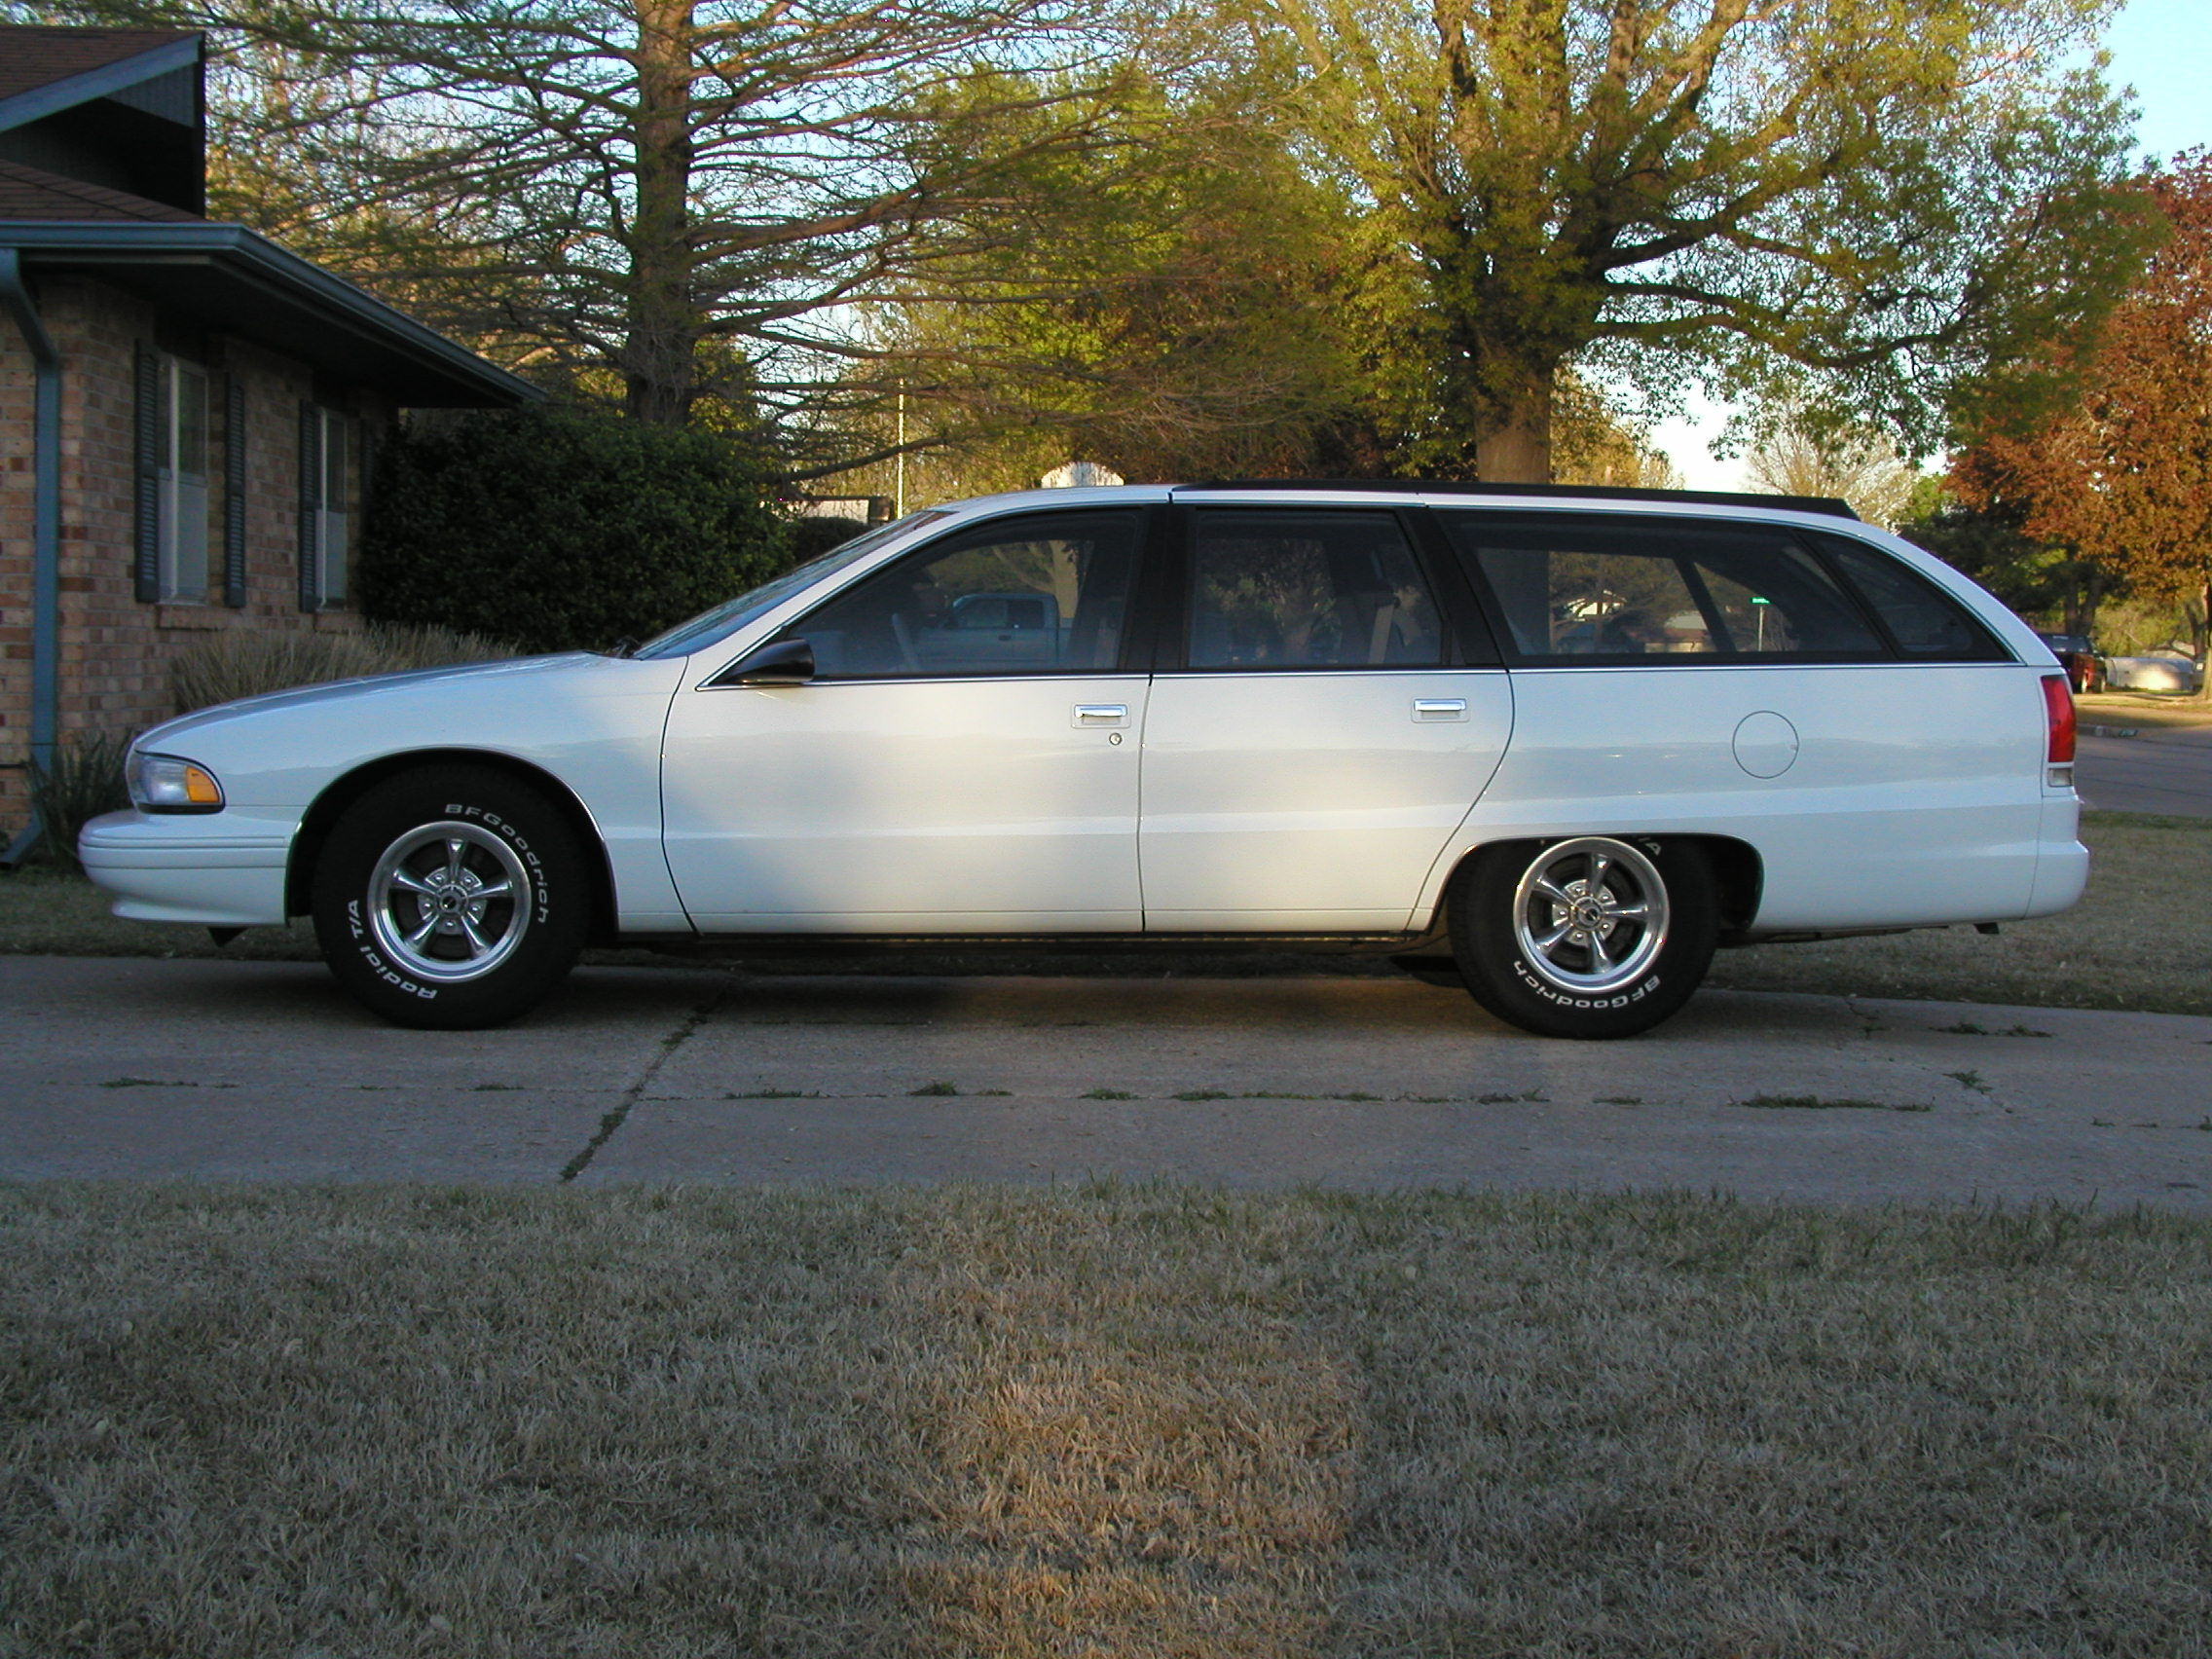 chevrolet caprice 1994 12 1994 chevrolet caprice information and photos momentcar 1994 Chevy Caprice Wagon Specs at gsmx.co